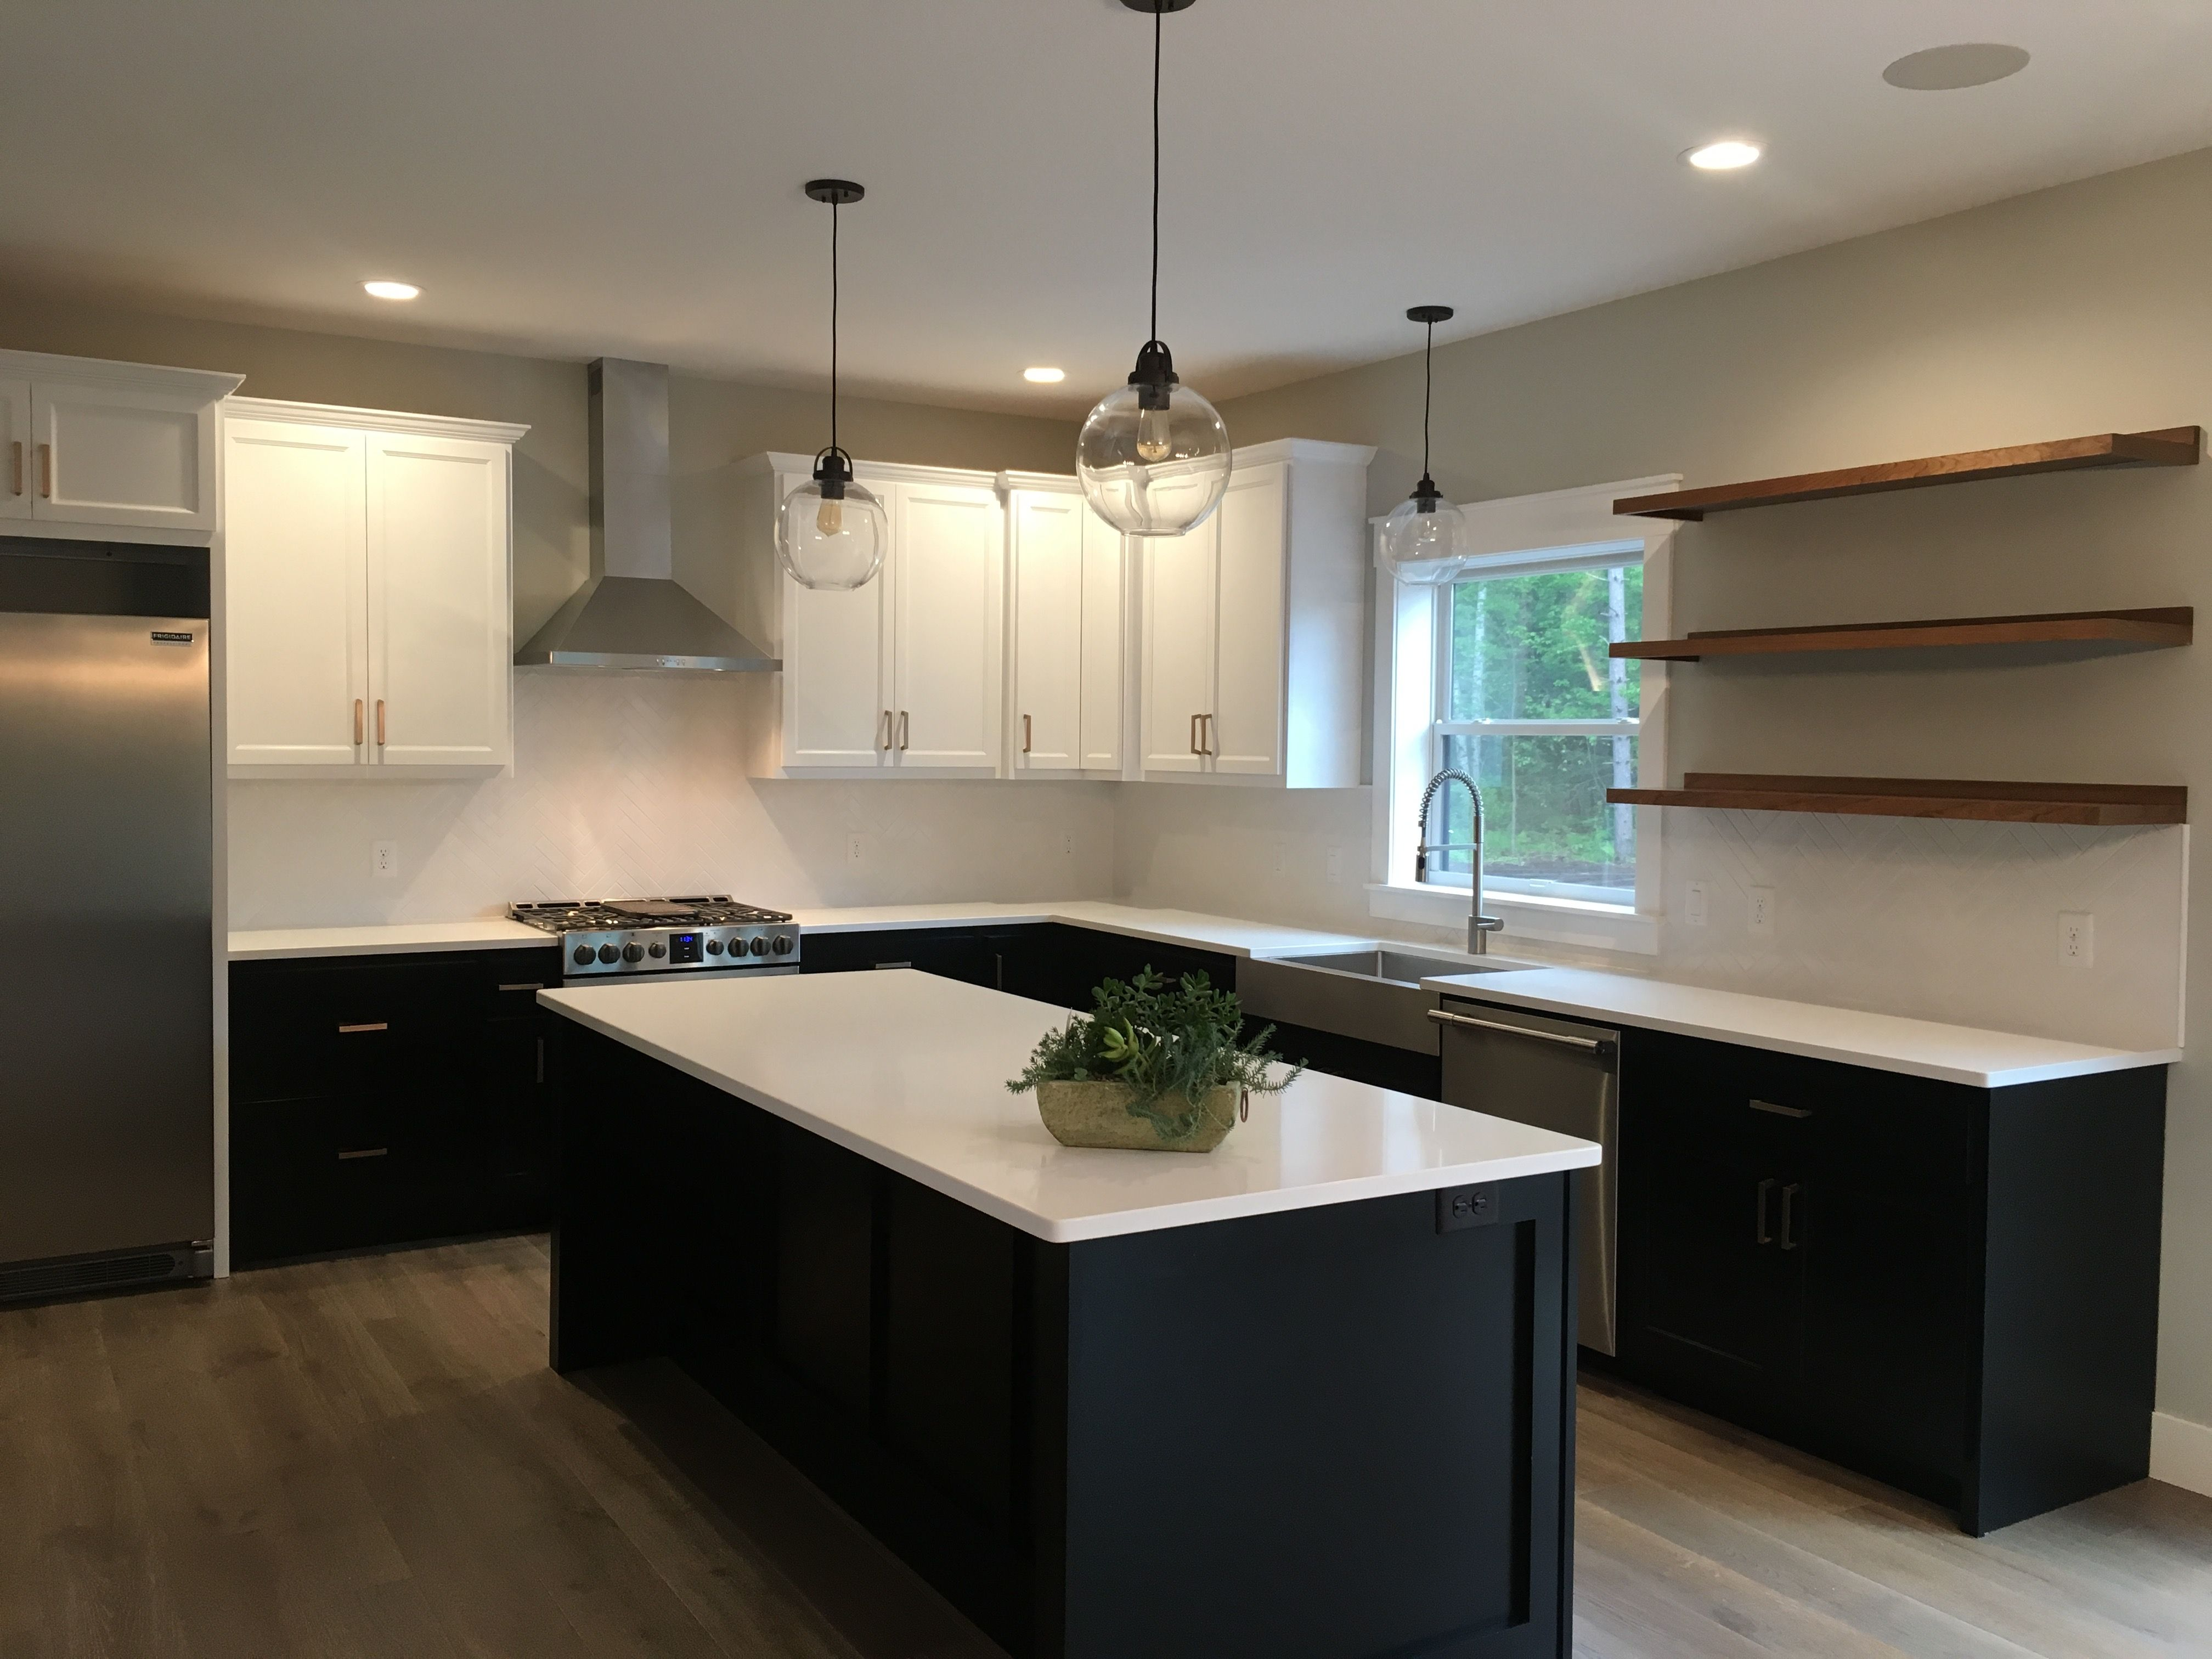 modern kitchen | c&m home builders and real estate | eau claire, wi